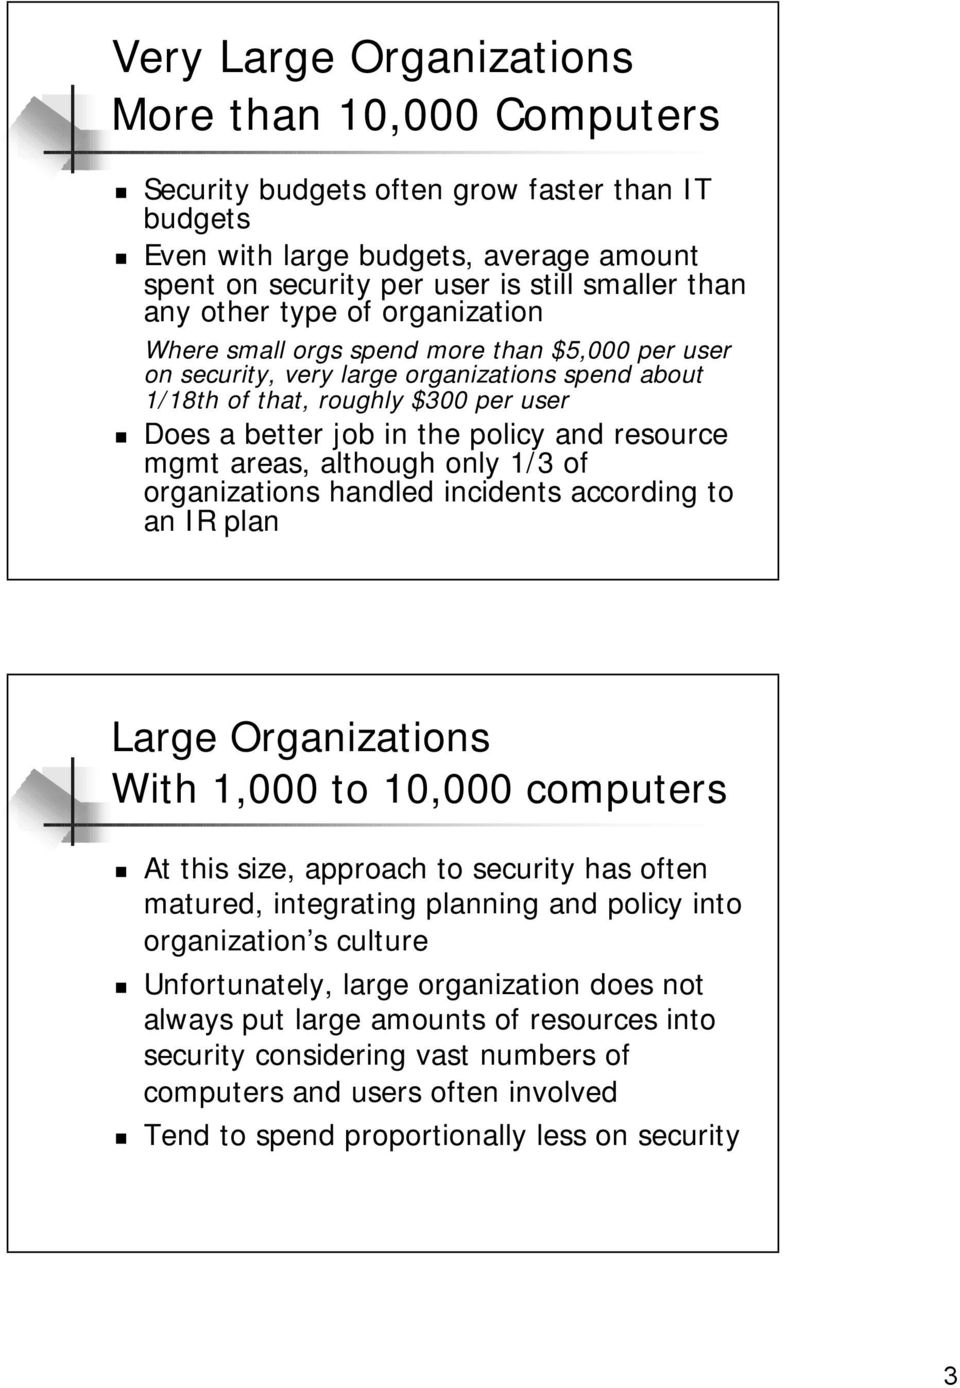 resource mgmt areas, although only 1/3 of organizations handled incidents according to an IR plan Large Organizations With 1,000 to 10,000 computers At this size, approach to security has often